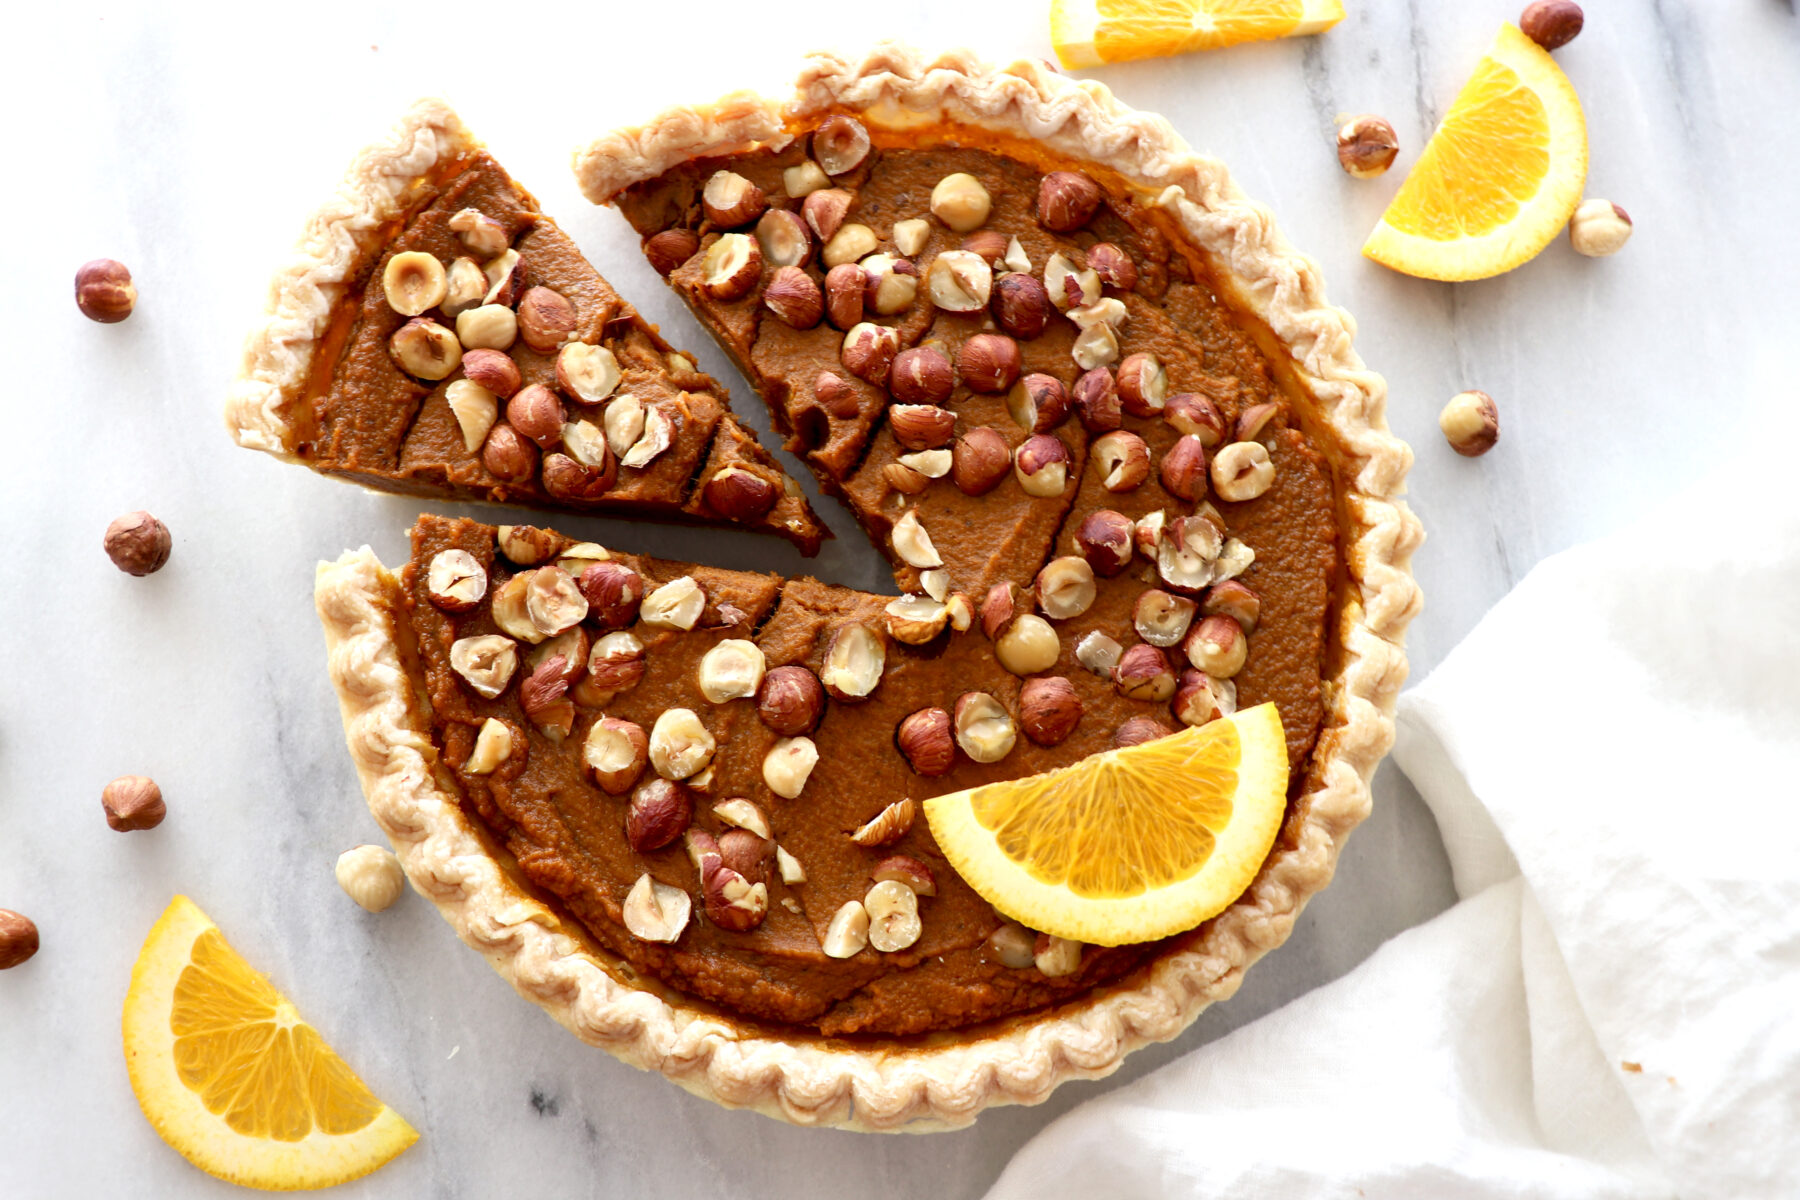 Orange hazelnut pumpkin pie topped with hazelnuts, orange slice and slice cut out. Surrounded by hazelnuts and orange slices.